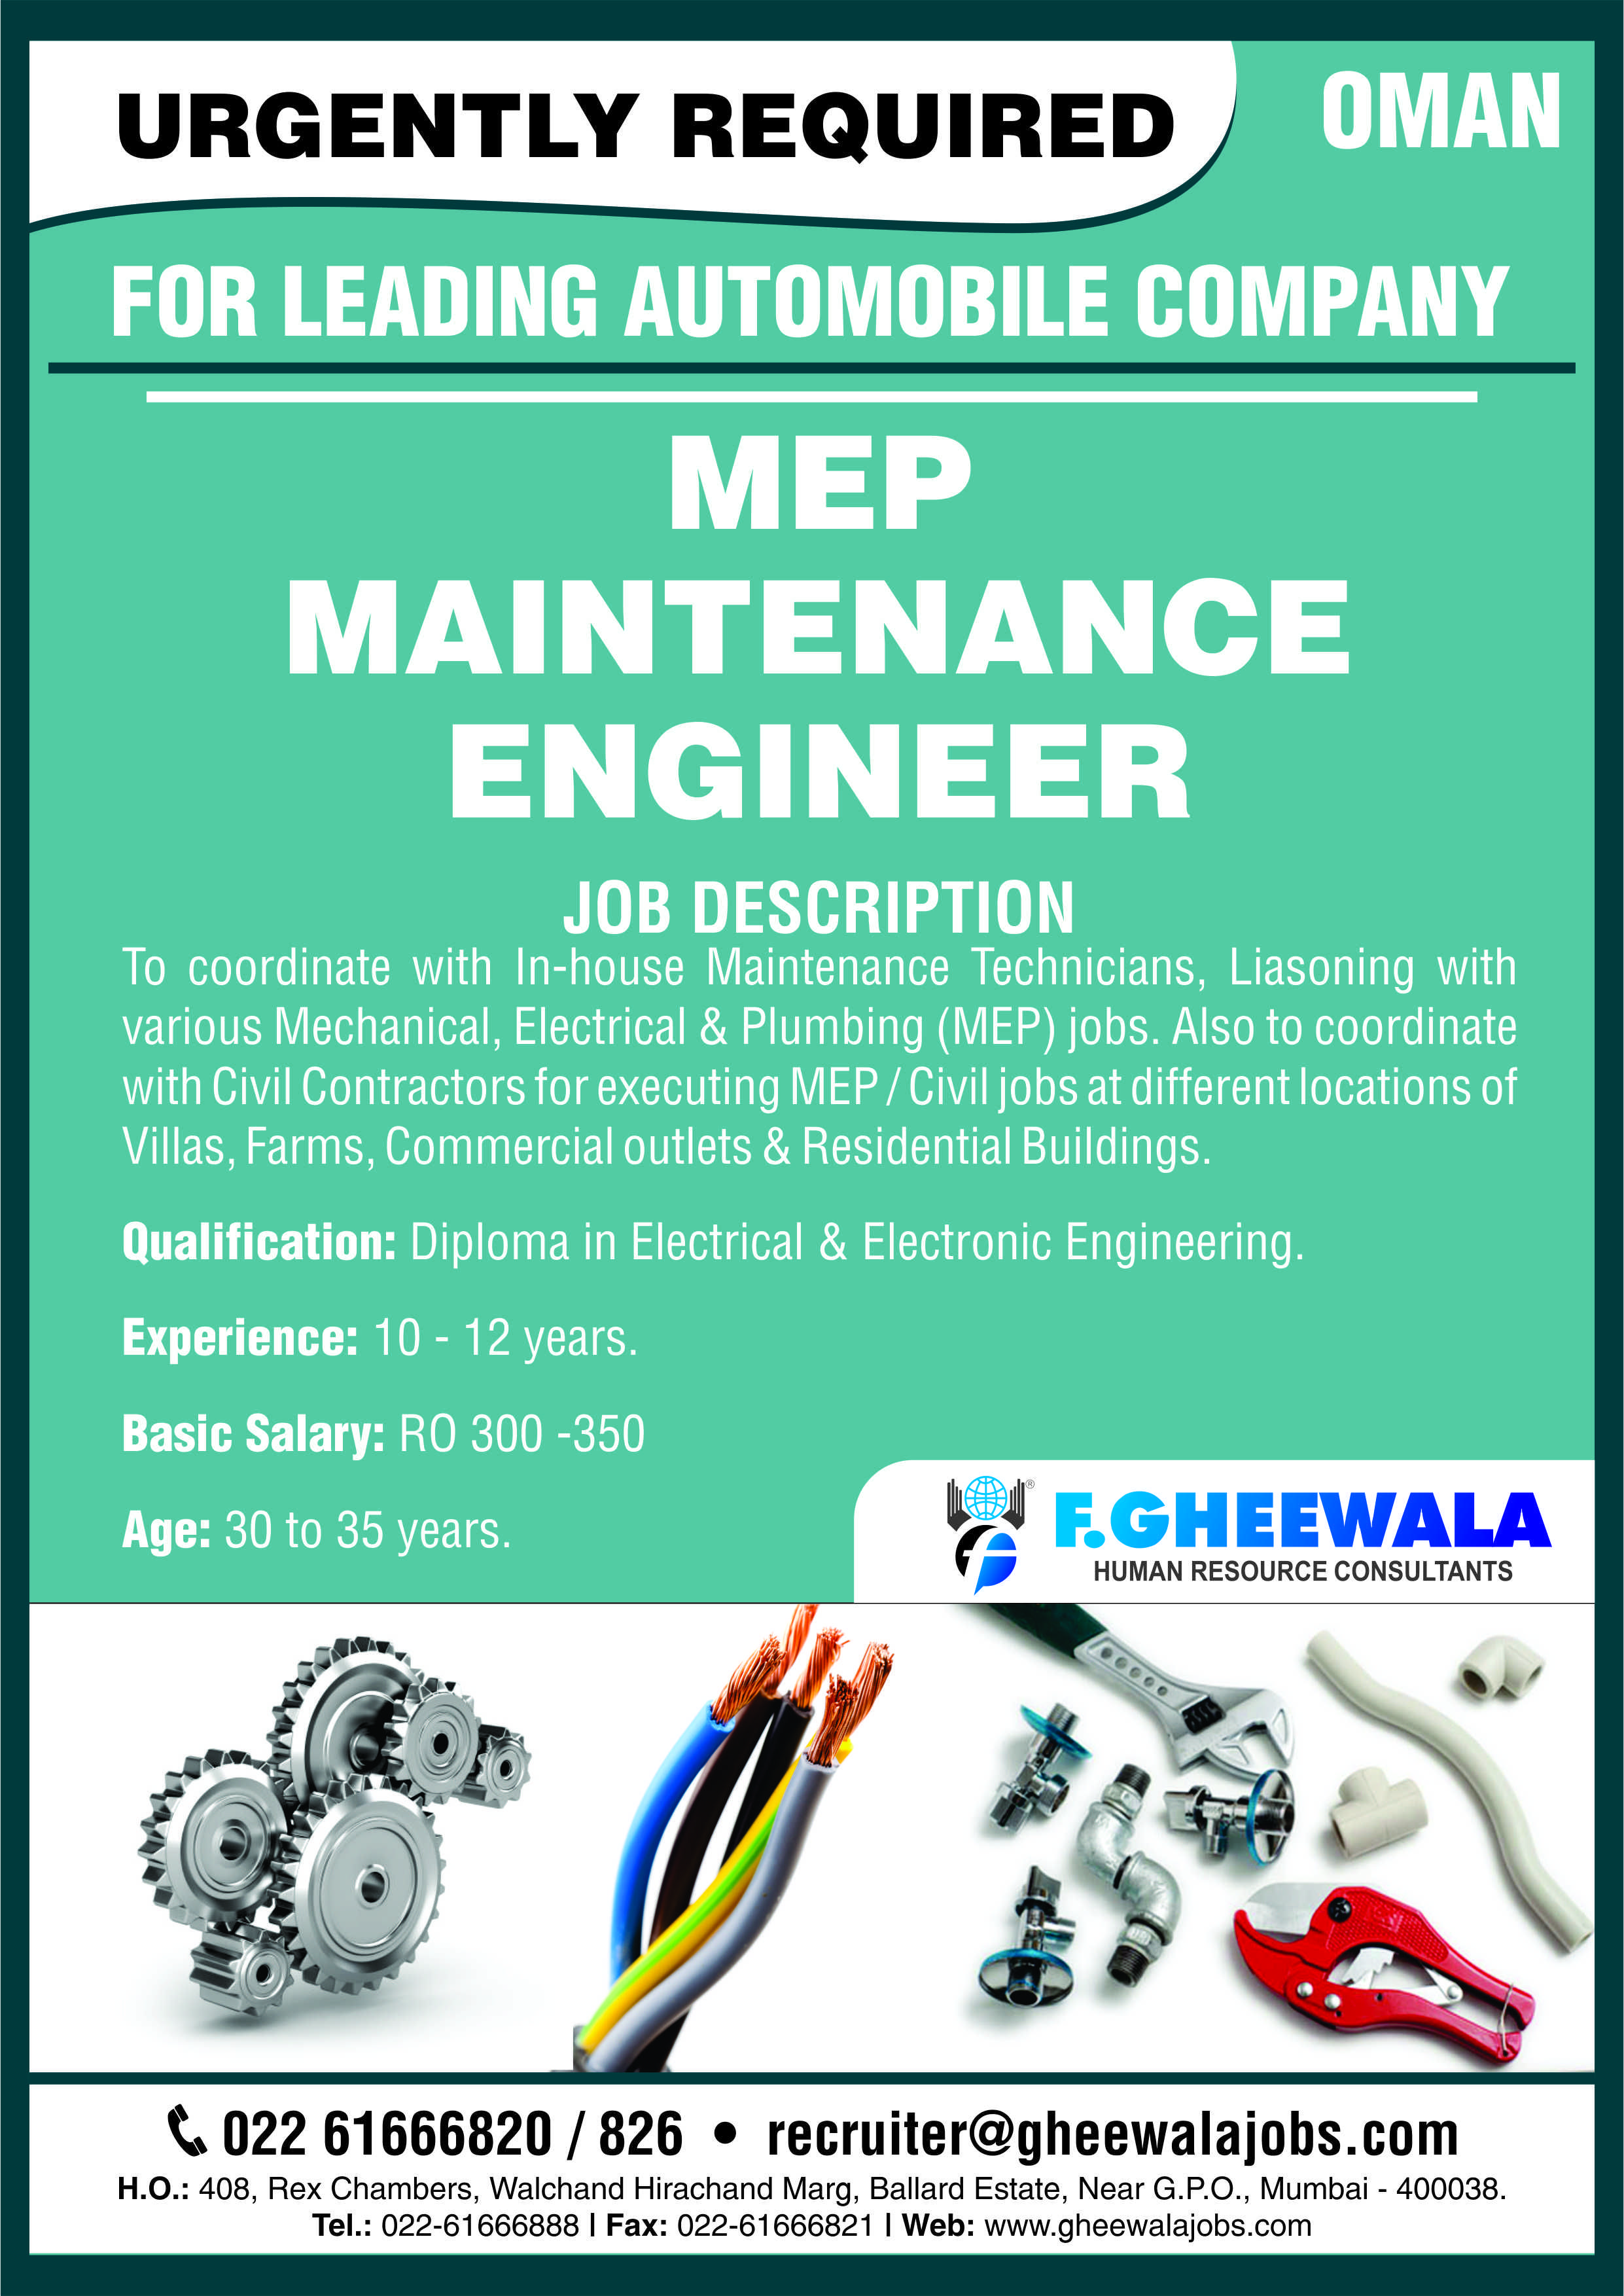 Urgently Required Mep Maintenance Engineer For Leading Automobile